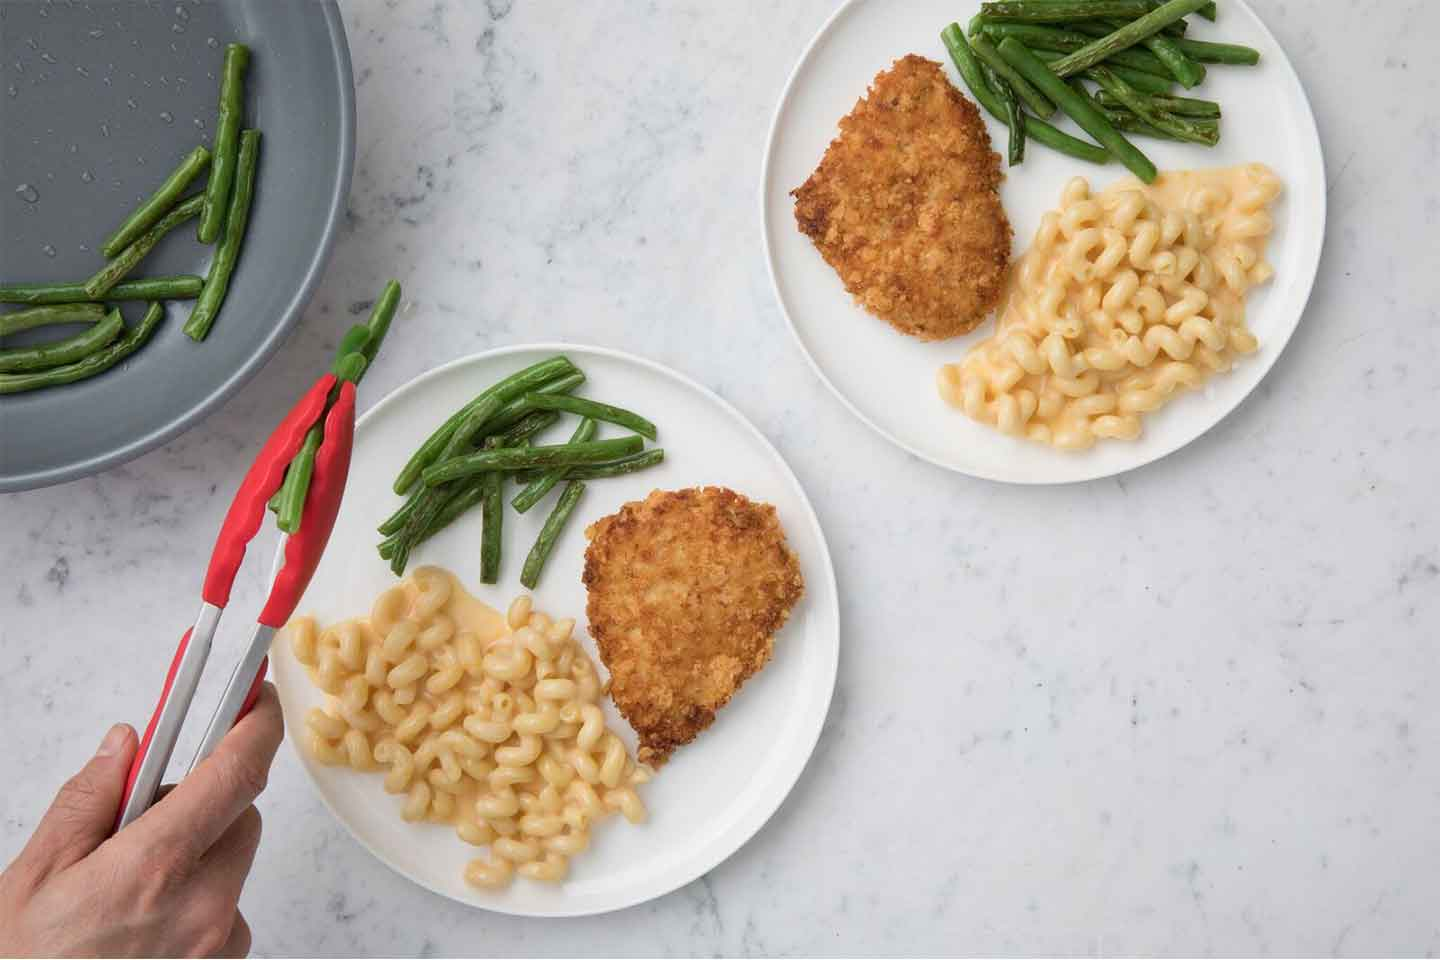 Chick-fil-a Mealtime Kit Boxes – Chicken, mac and cheese and green beans